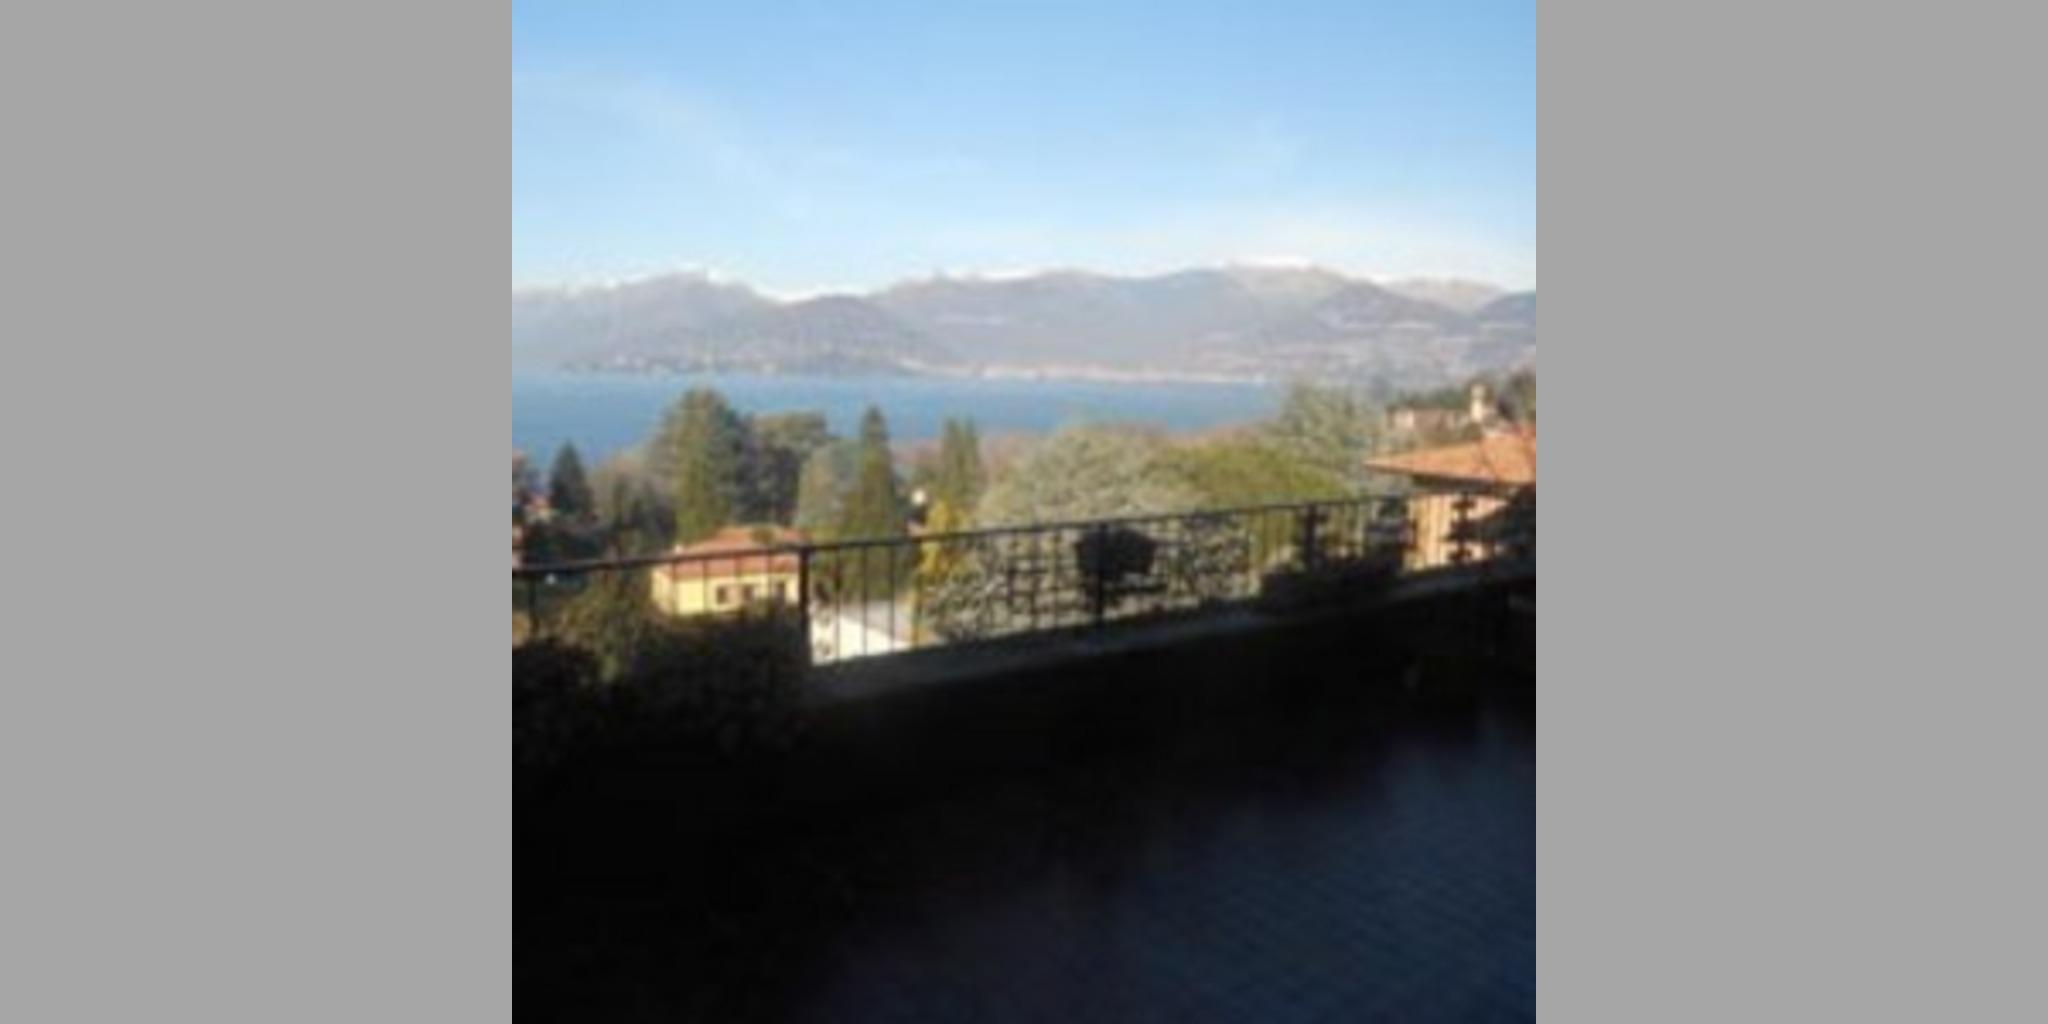 Bed & Breakfast Laveno mombello - Cerro